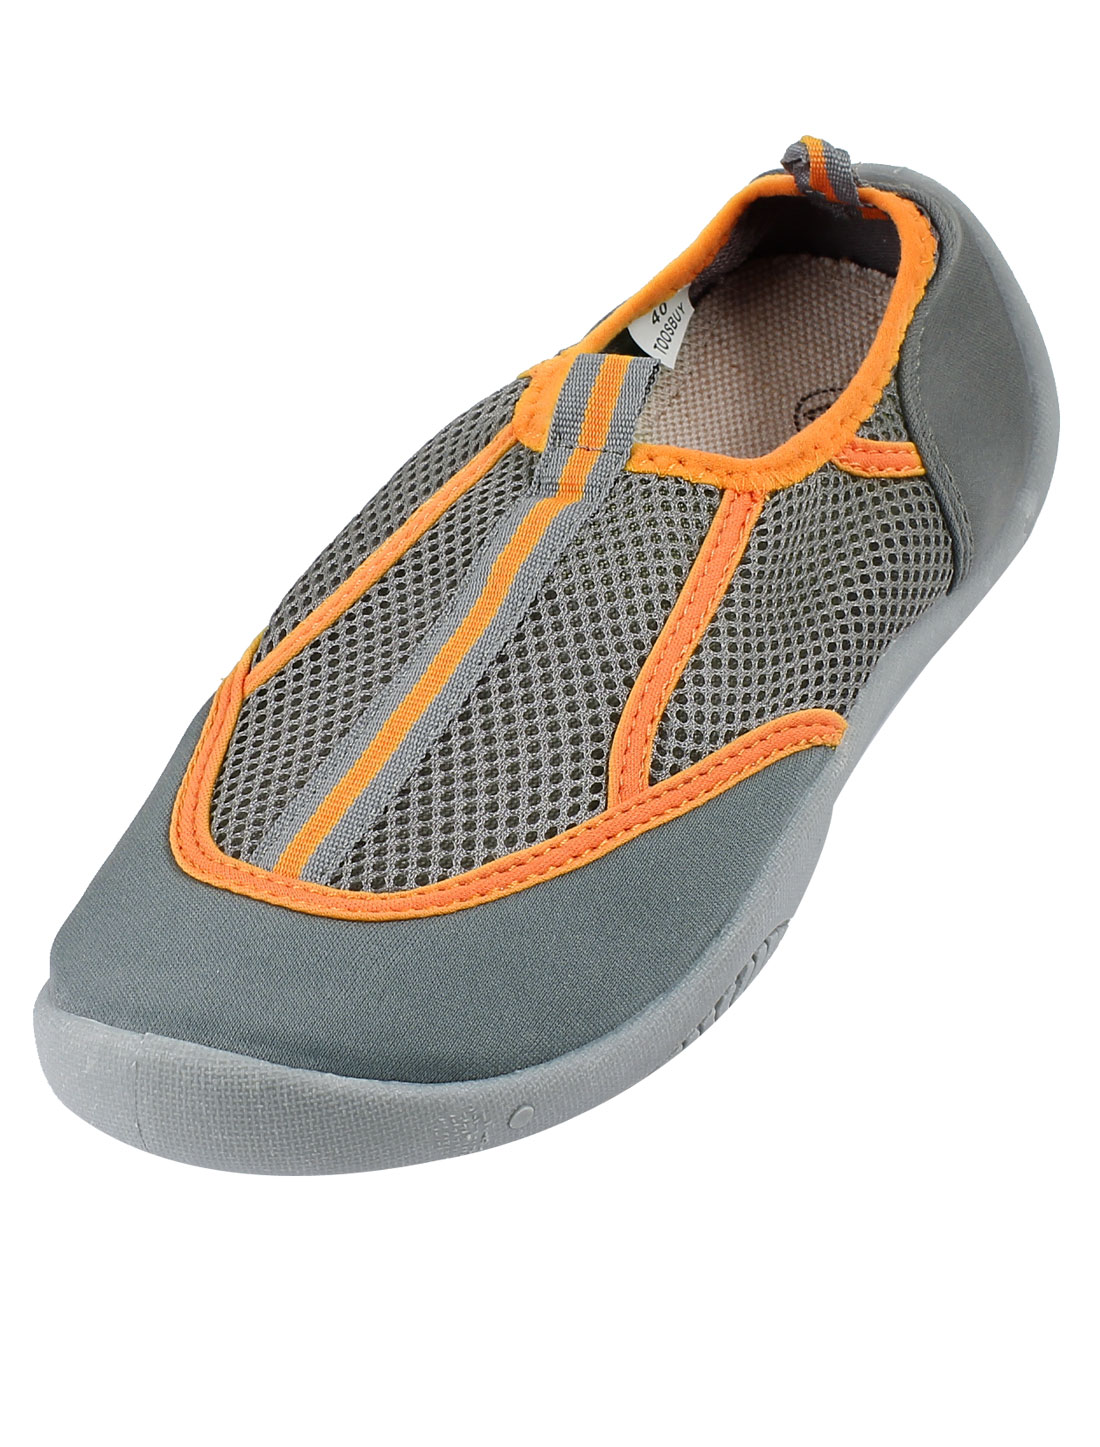 Gray Orange Round Toe Low Cut Flat Beach Mesh Shoes US 7 for Ladies